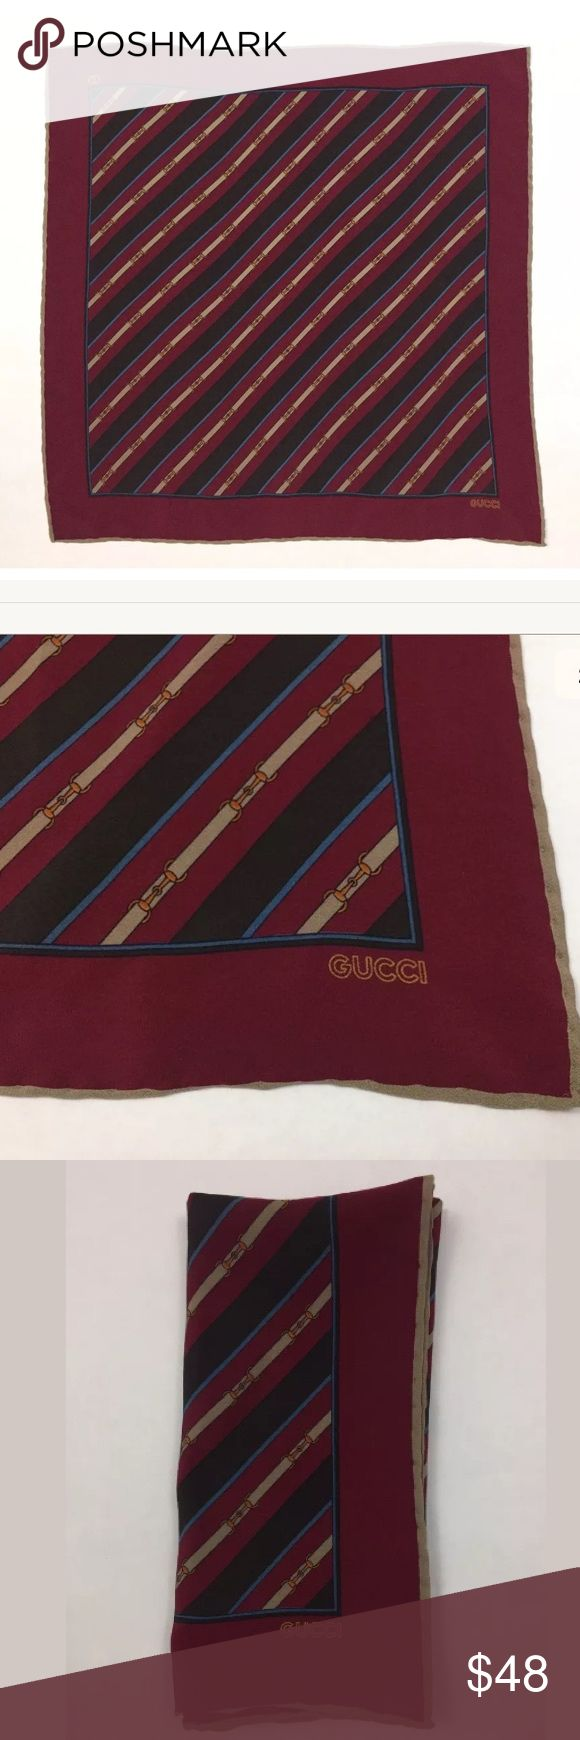 """Vintage Gucci Silk Handkerchief/Scarf/Handbag Tie 16x16"""". 100% Silk. Made in Italy. Missing hang tag (have same exact handkerchief in blue with hangtag). Can be worn as a scarf, to tie on to handbag or for a mans pocket square. Gucci Accessories"""